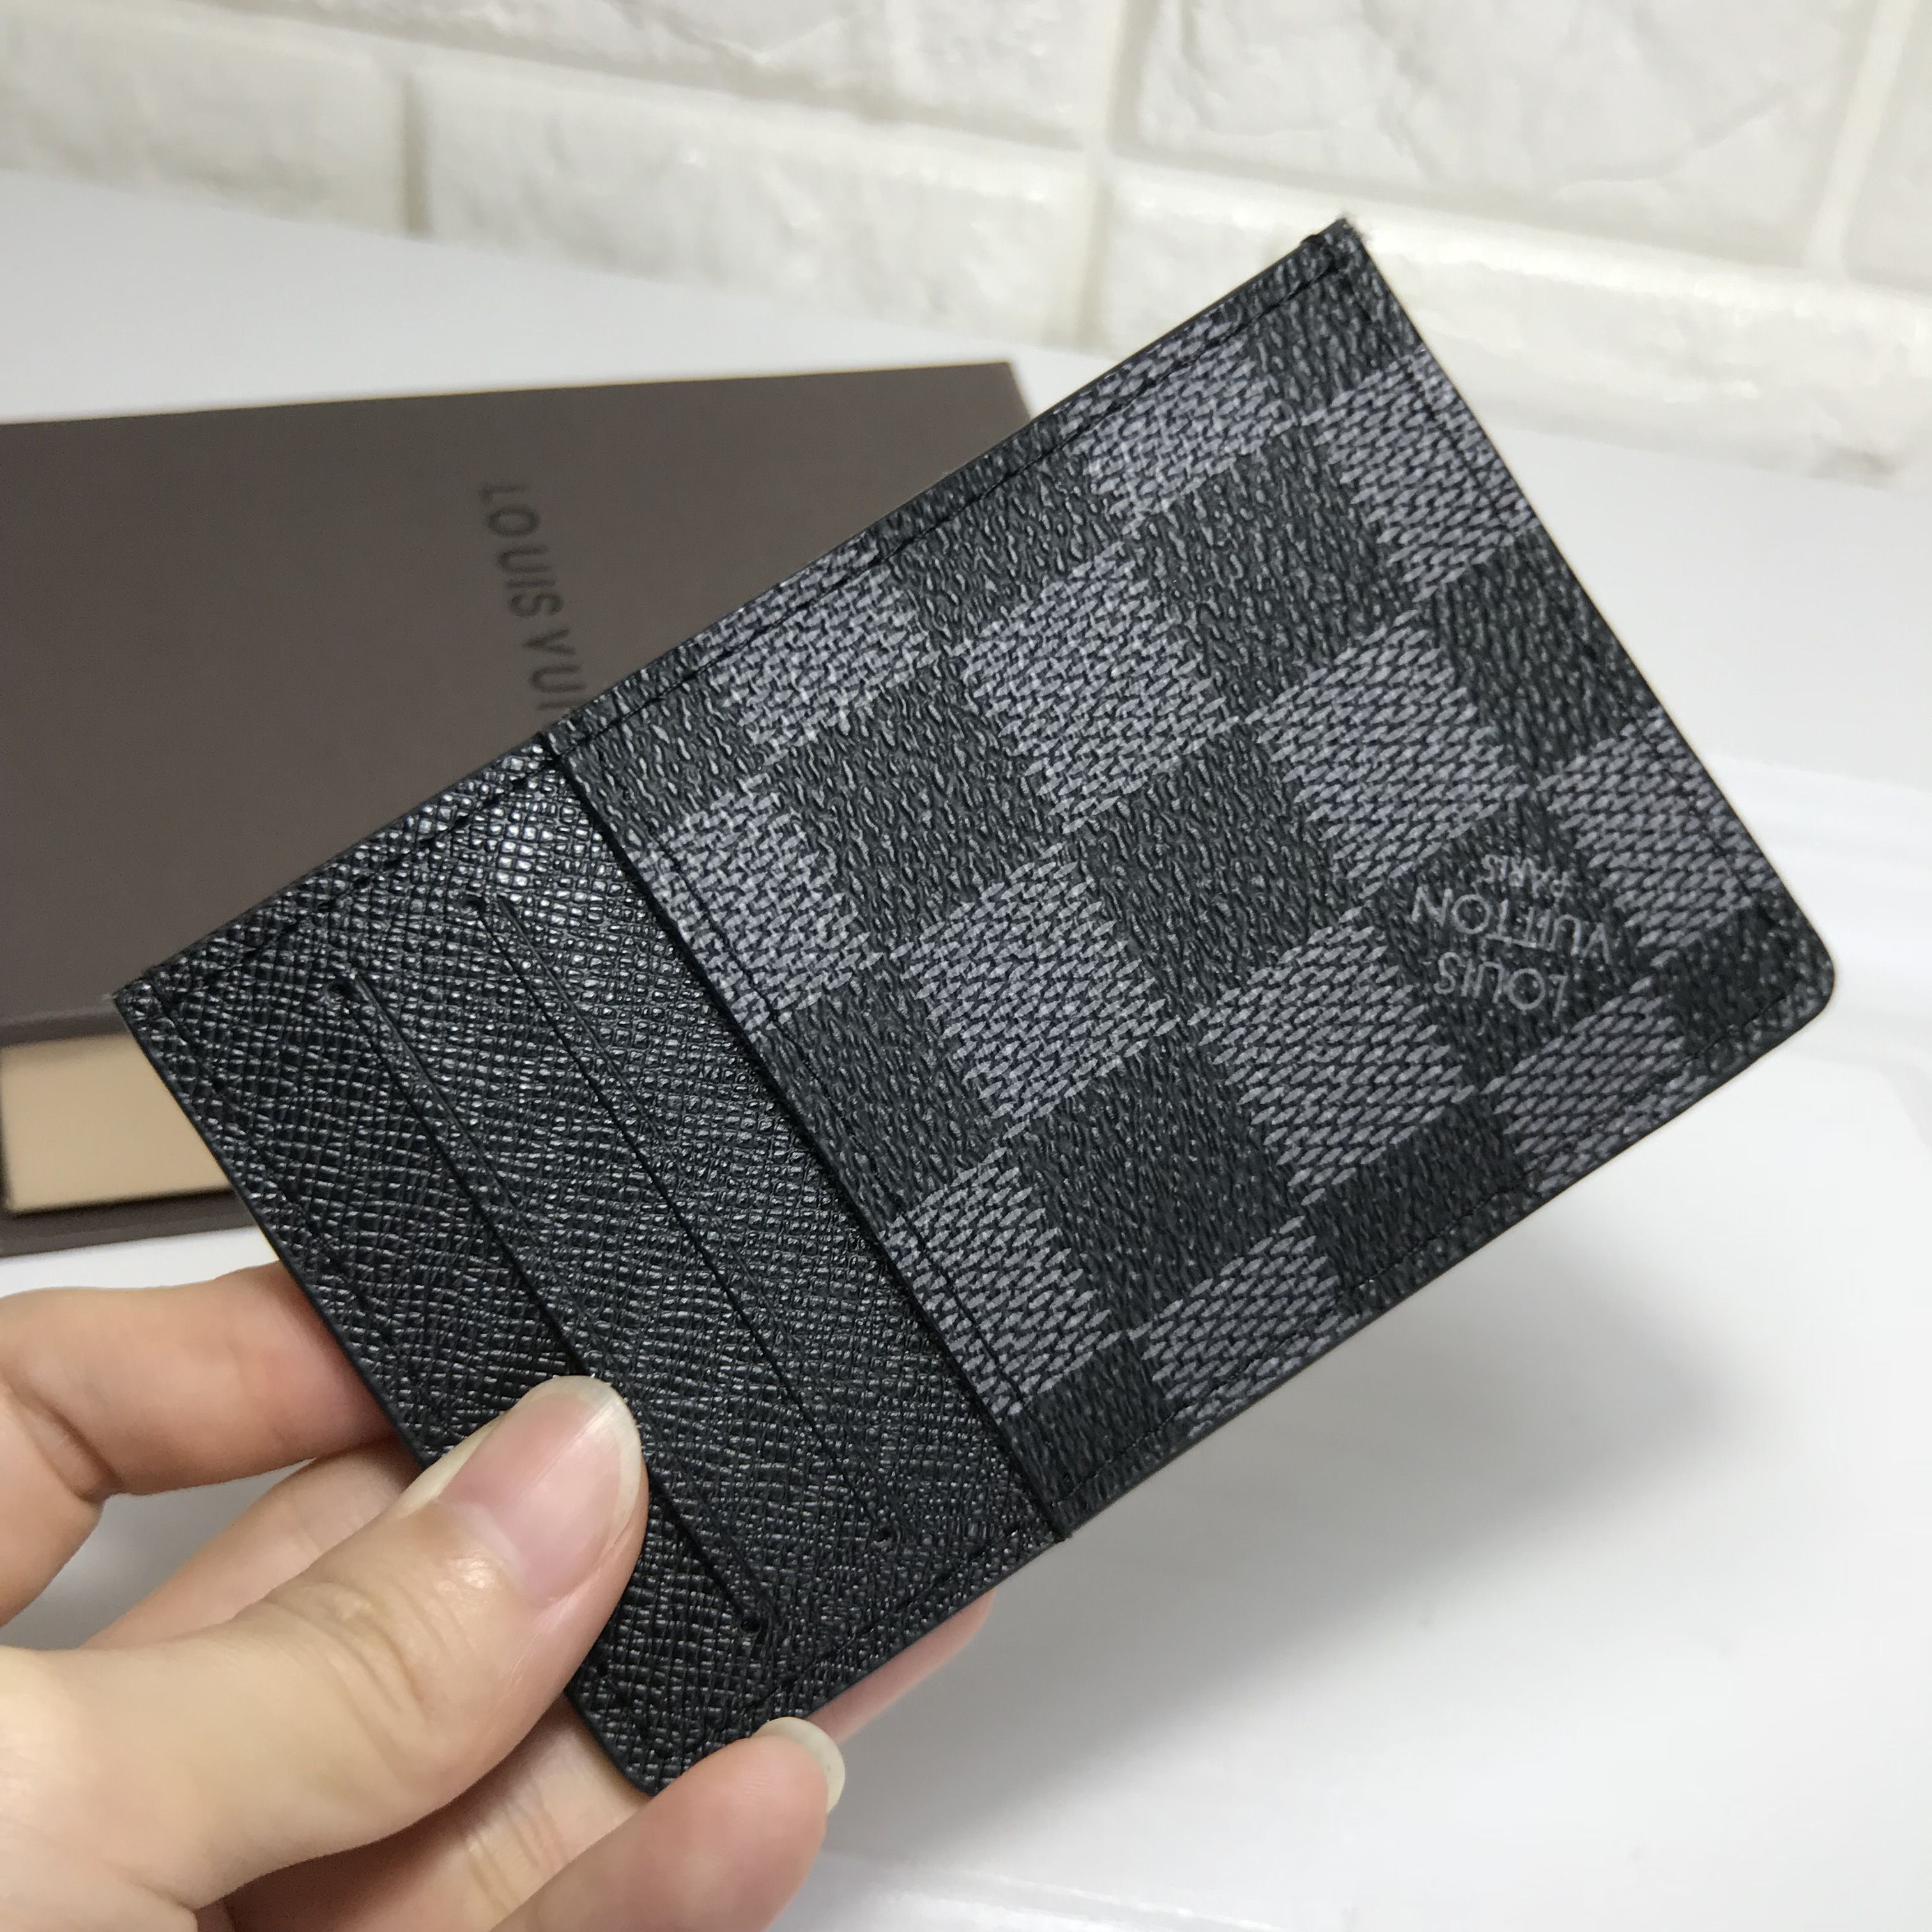 Louis Vuitton Pocket Organiser 가죽공ㅇㅖ 가죽공예